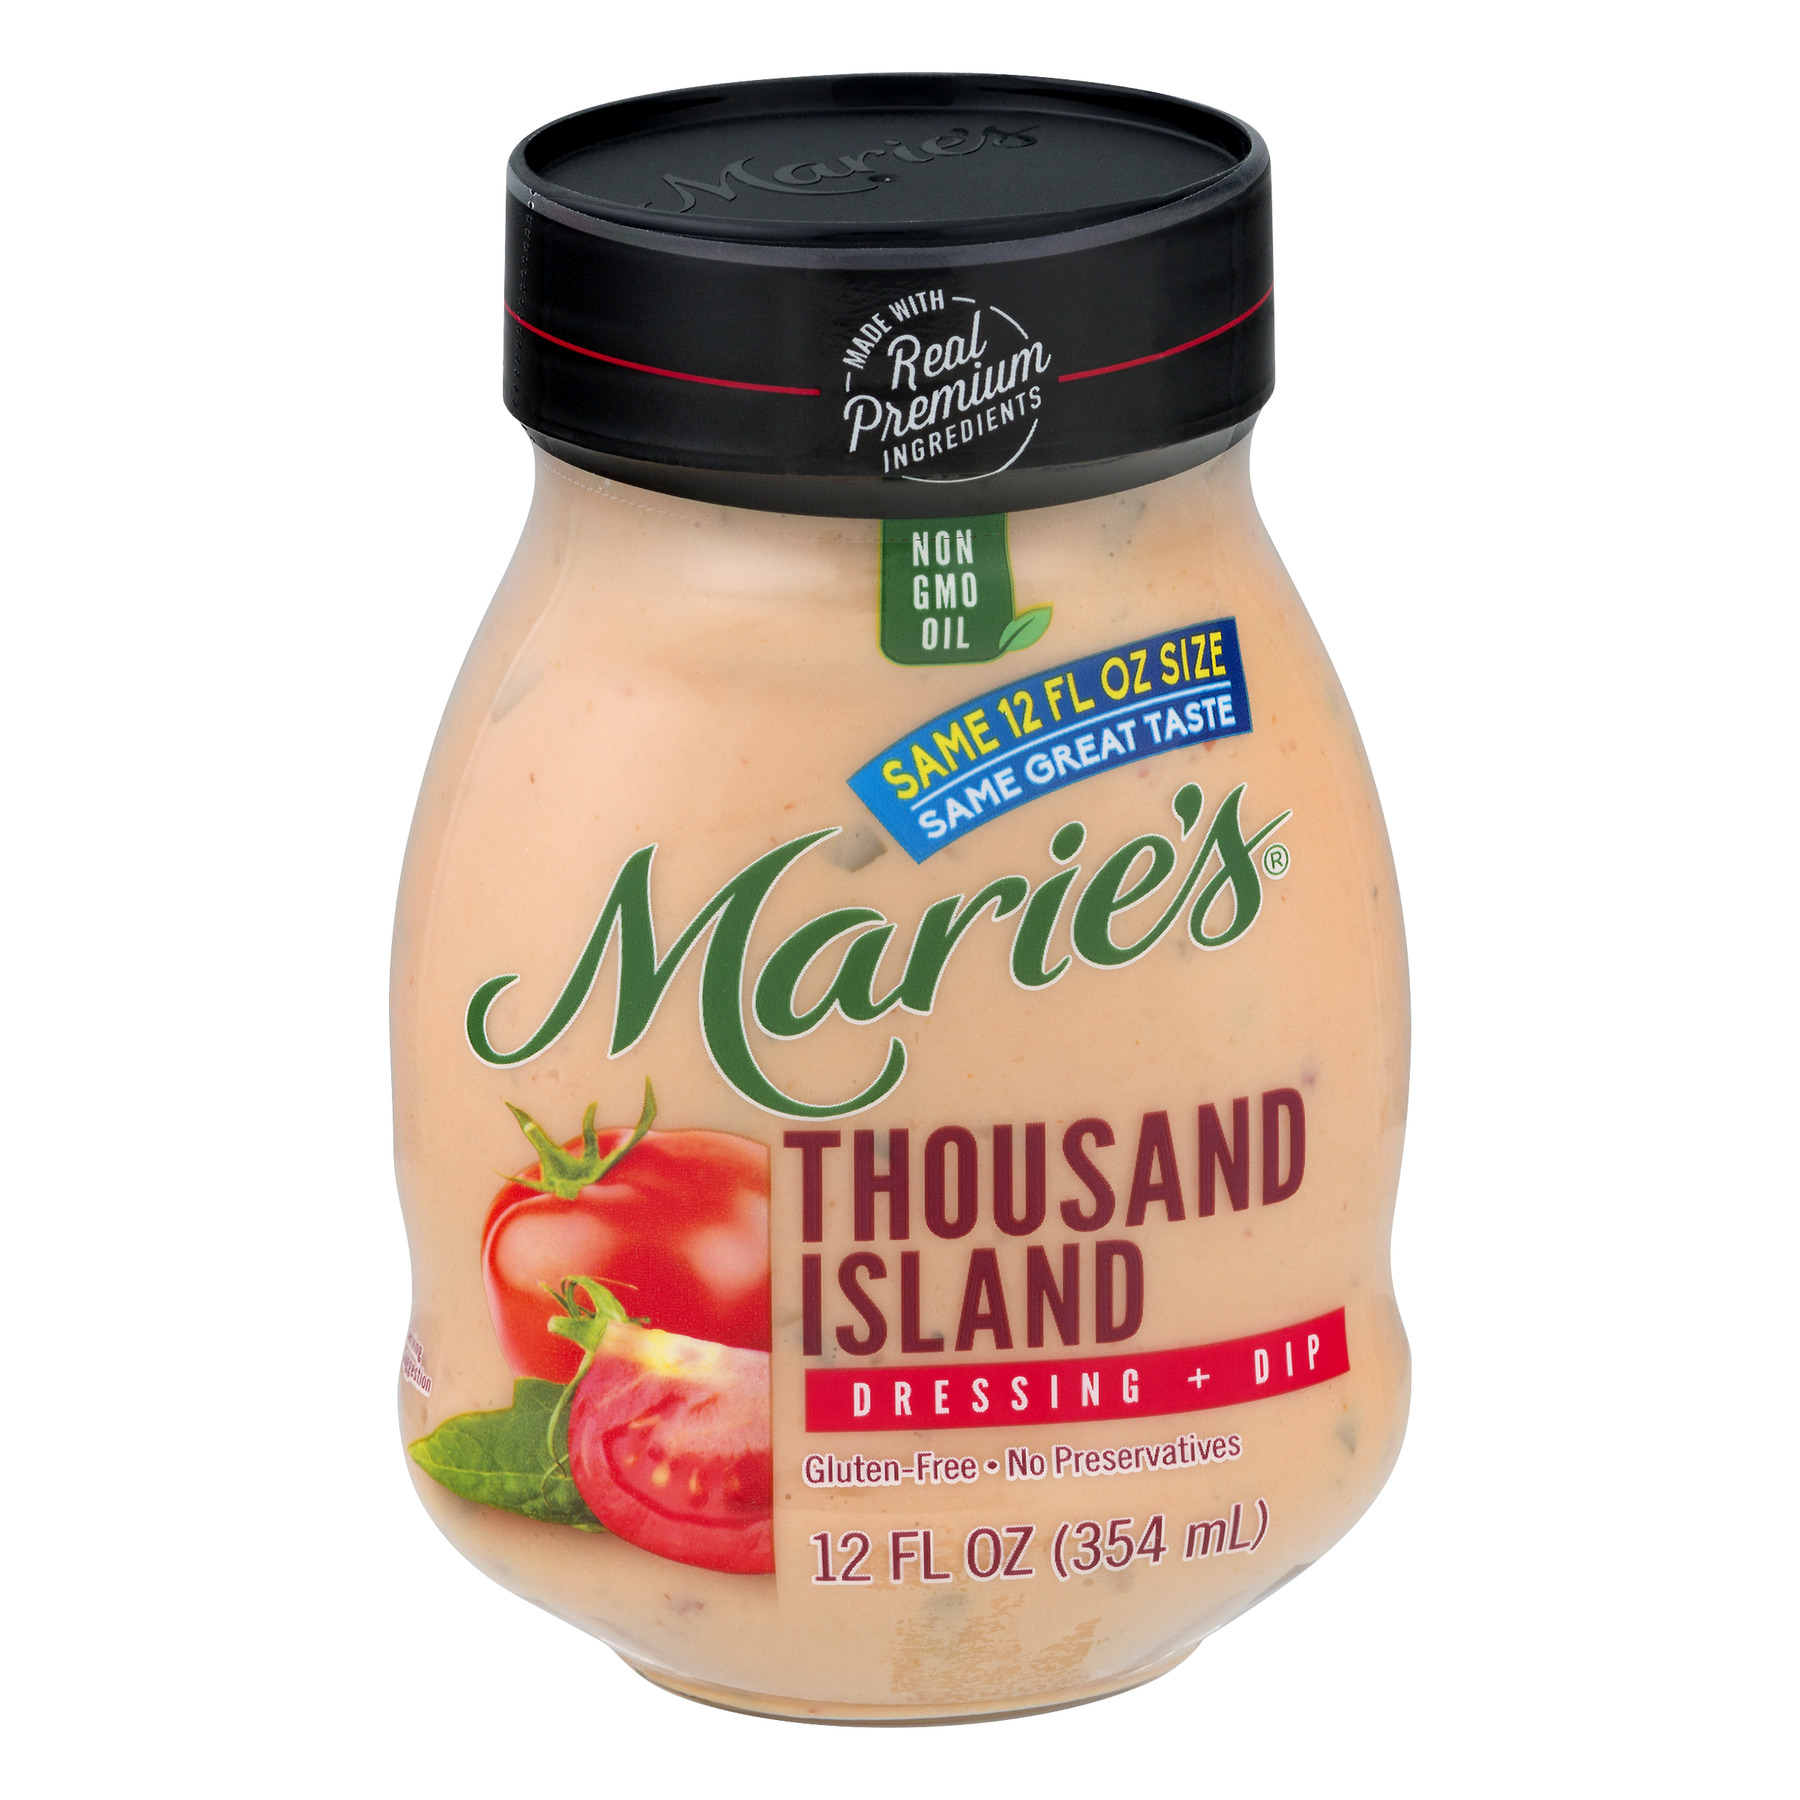 Marie's® Thousand Island Dressing + Dip 12 fl. oz. Jar